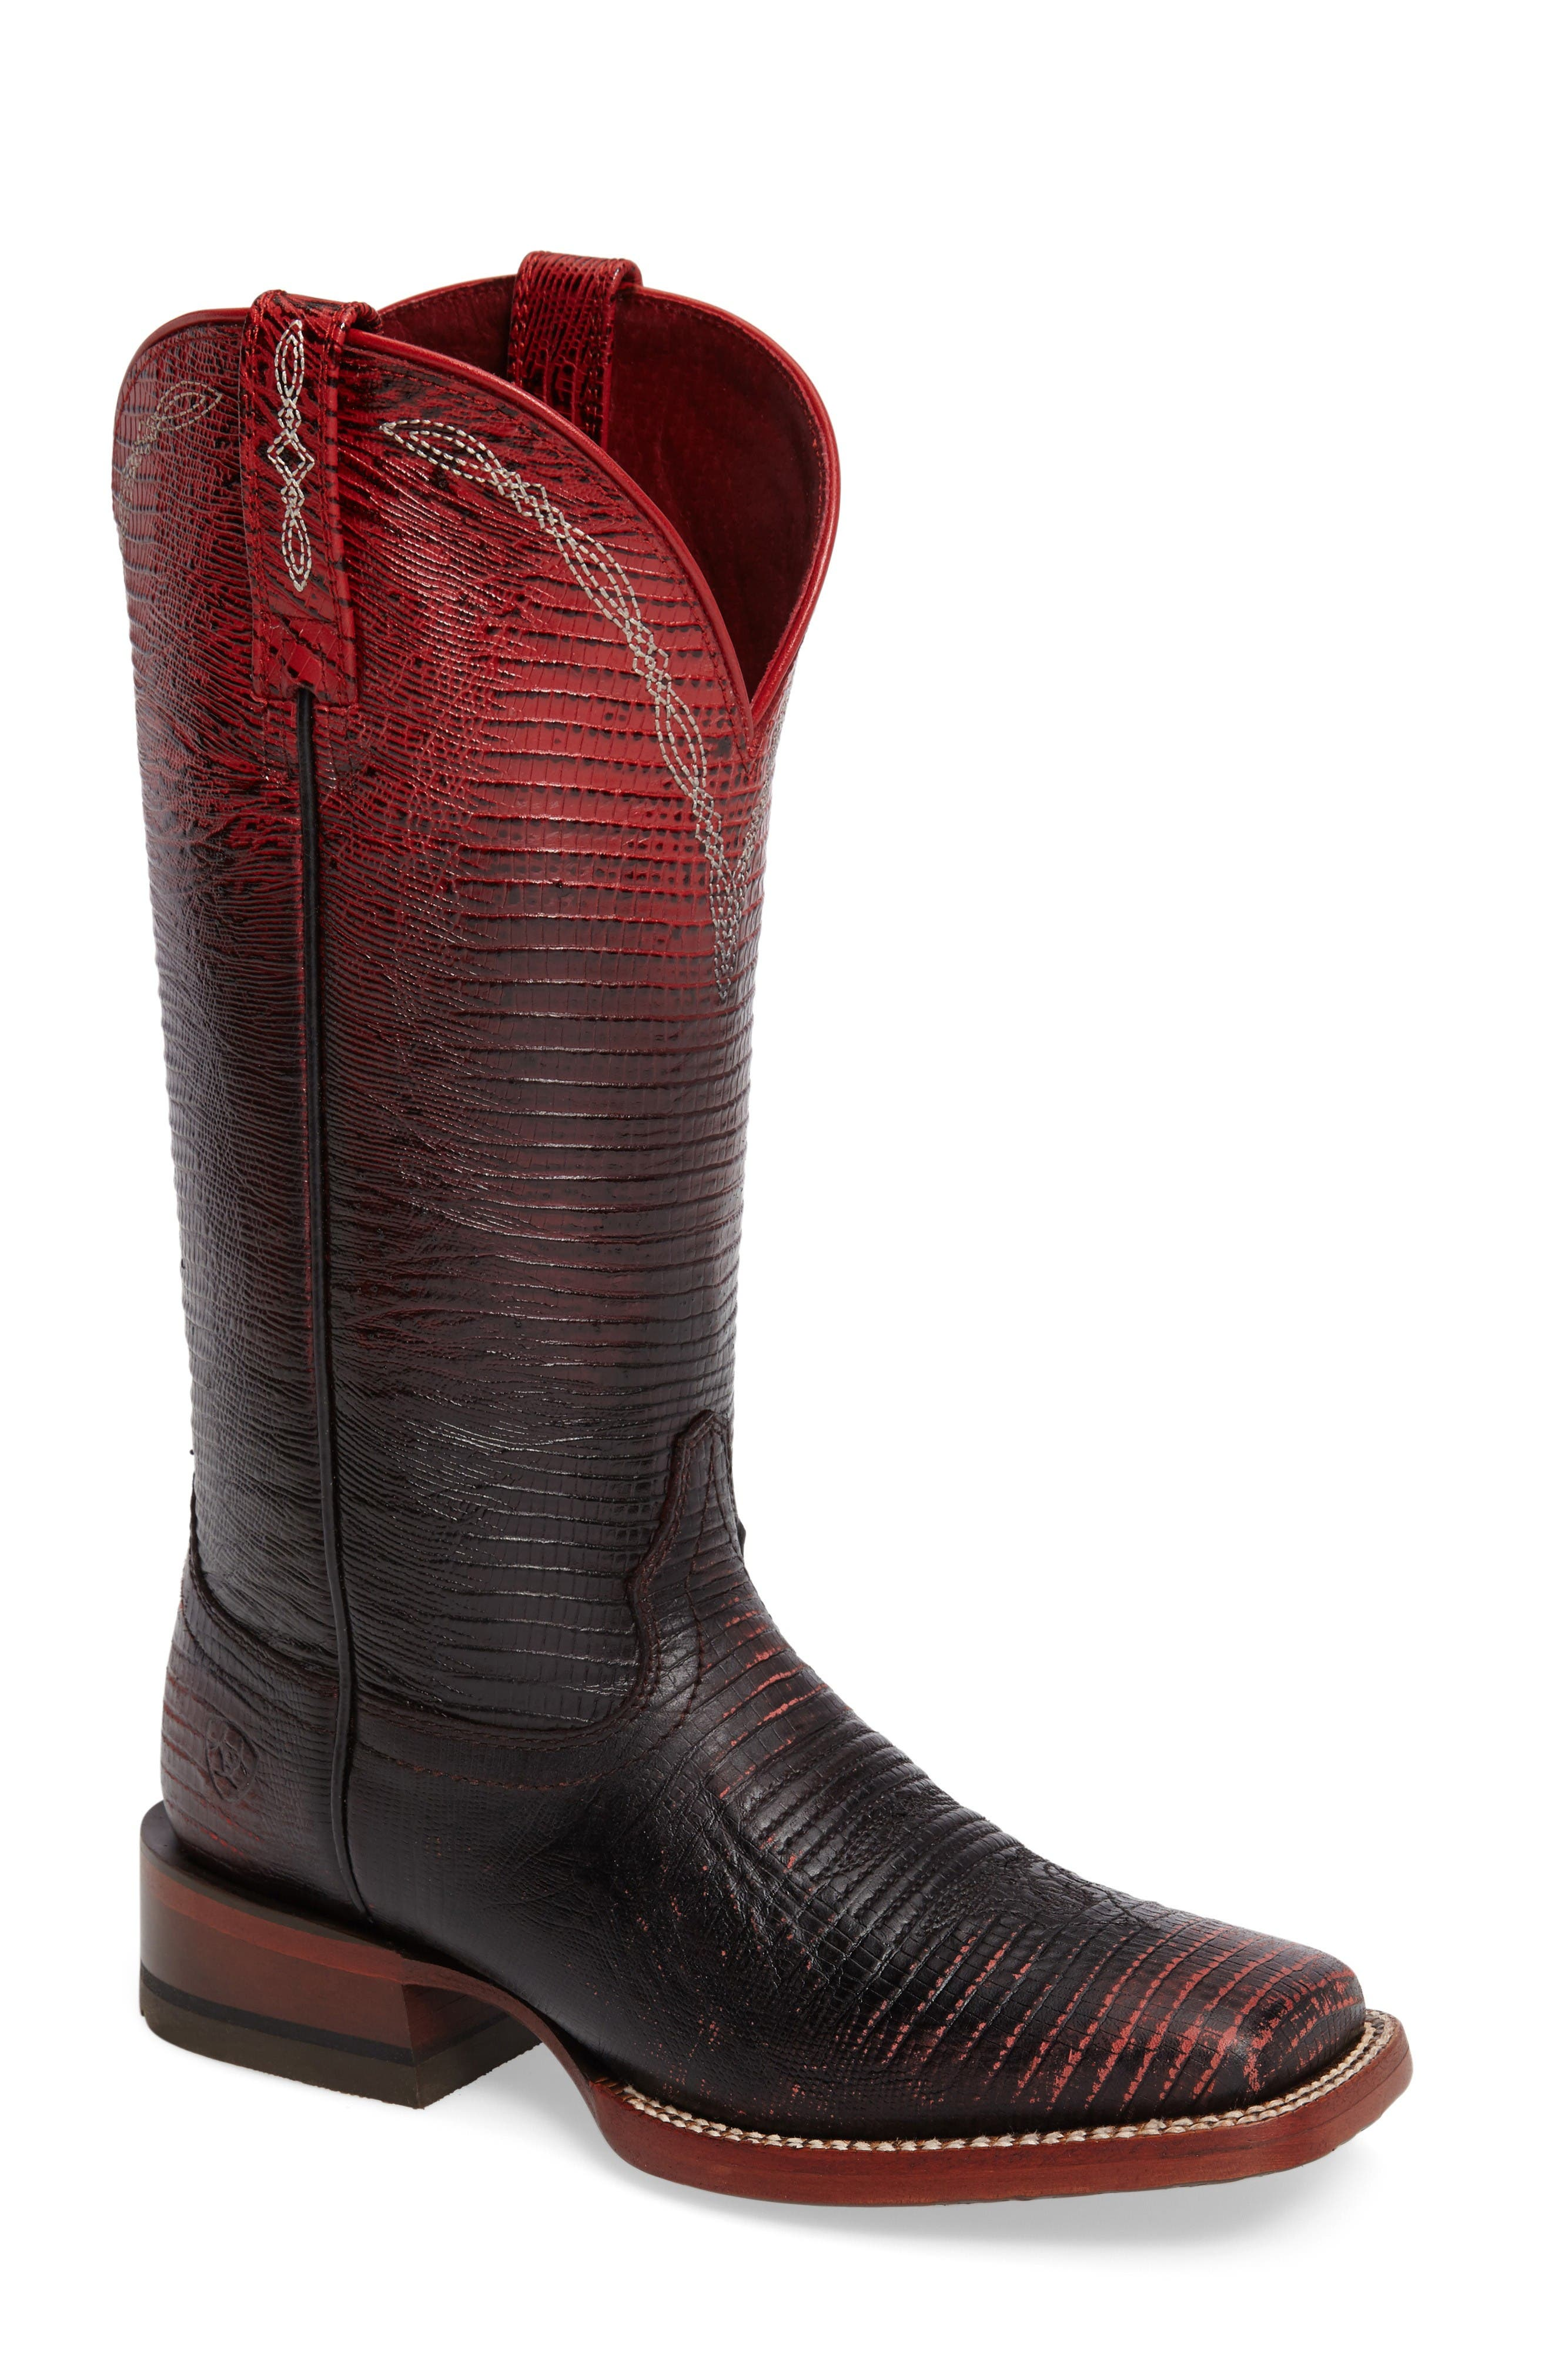 Main Image - Ariat Ombré Square Toe Western Boot (Women)